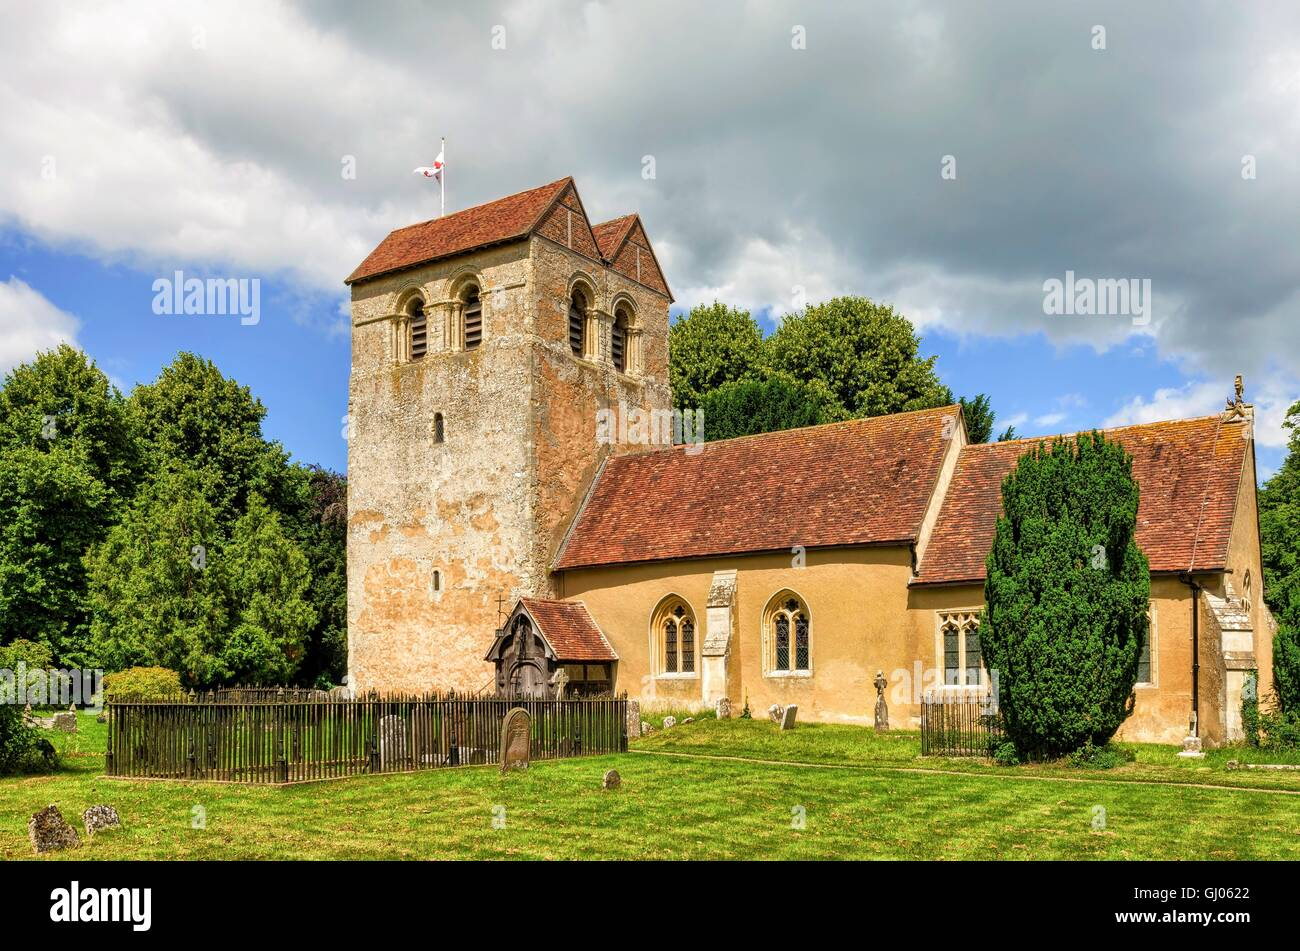 Parish church, Fingest, Buckinghamshire, England - Stock Image